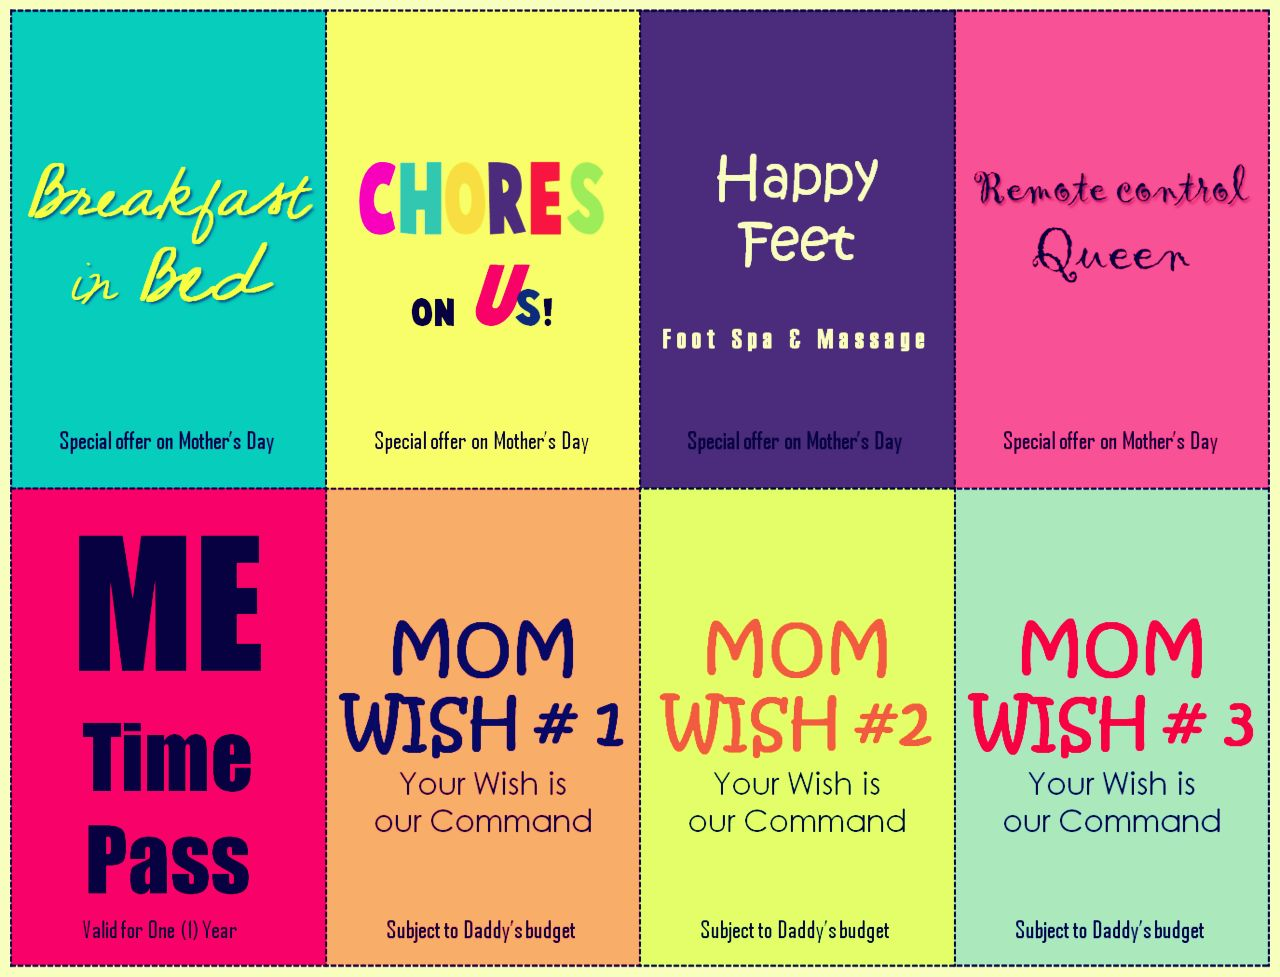 Printable Coupon Roundup! Your Favorite Personal Products! Posted on December 6th, by Coupon Printer Post contains sponsored/affiliate links and I .